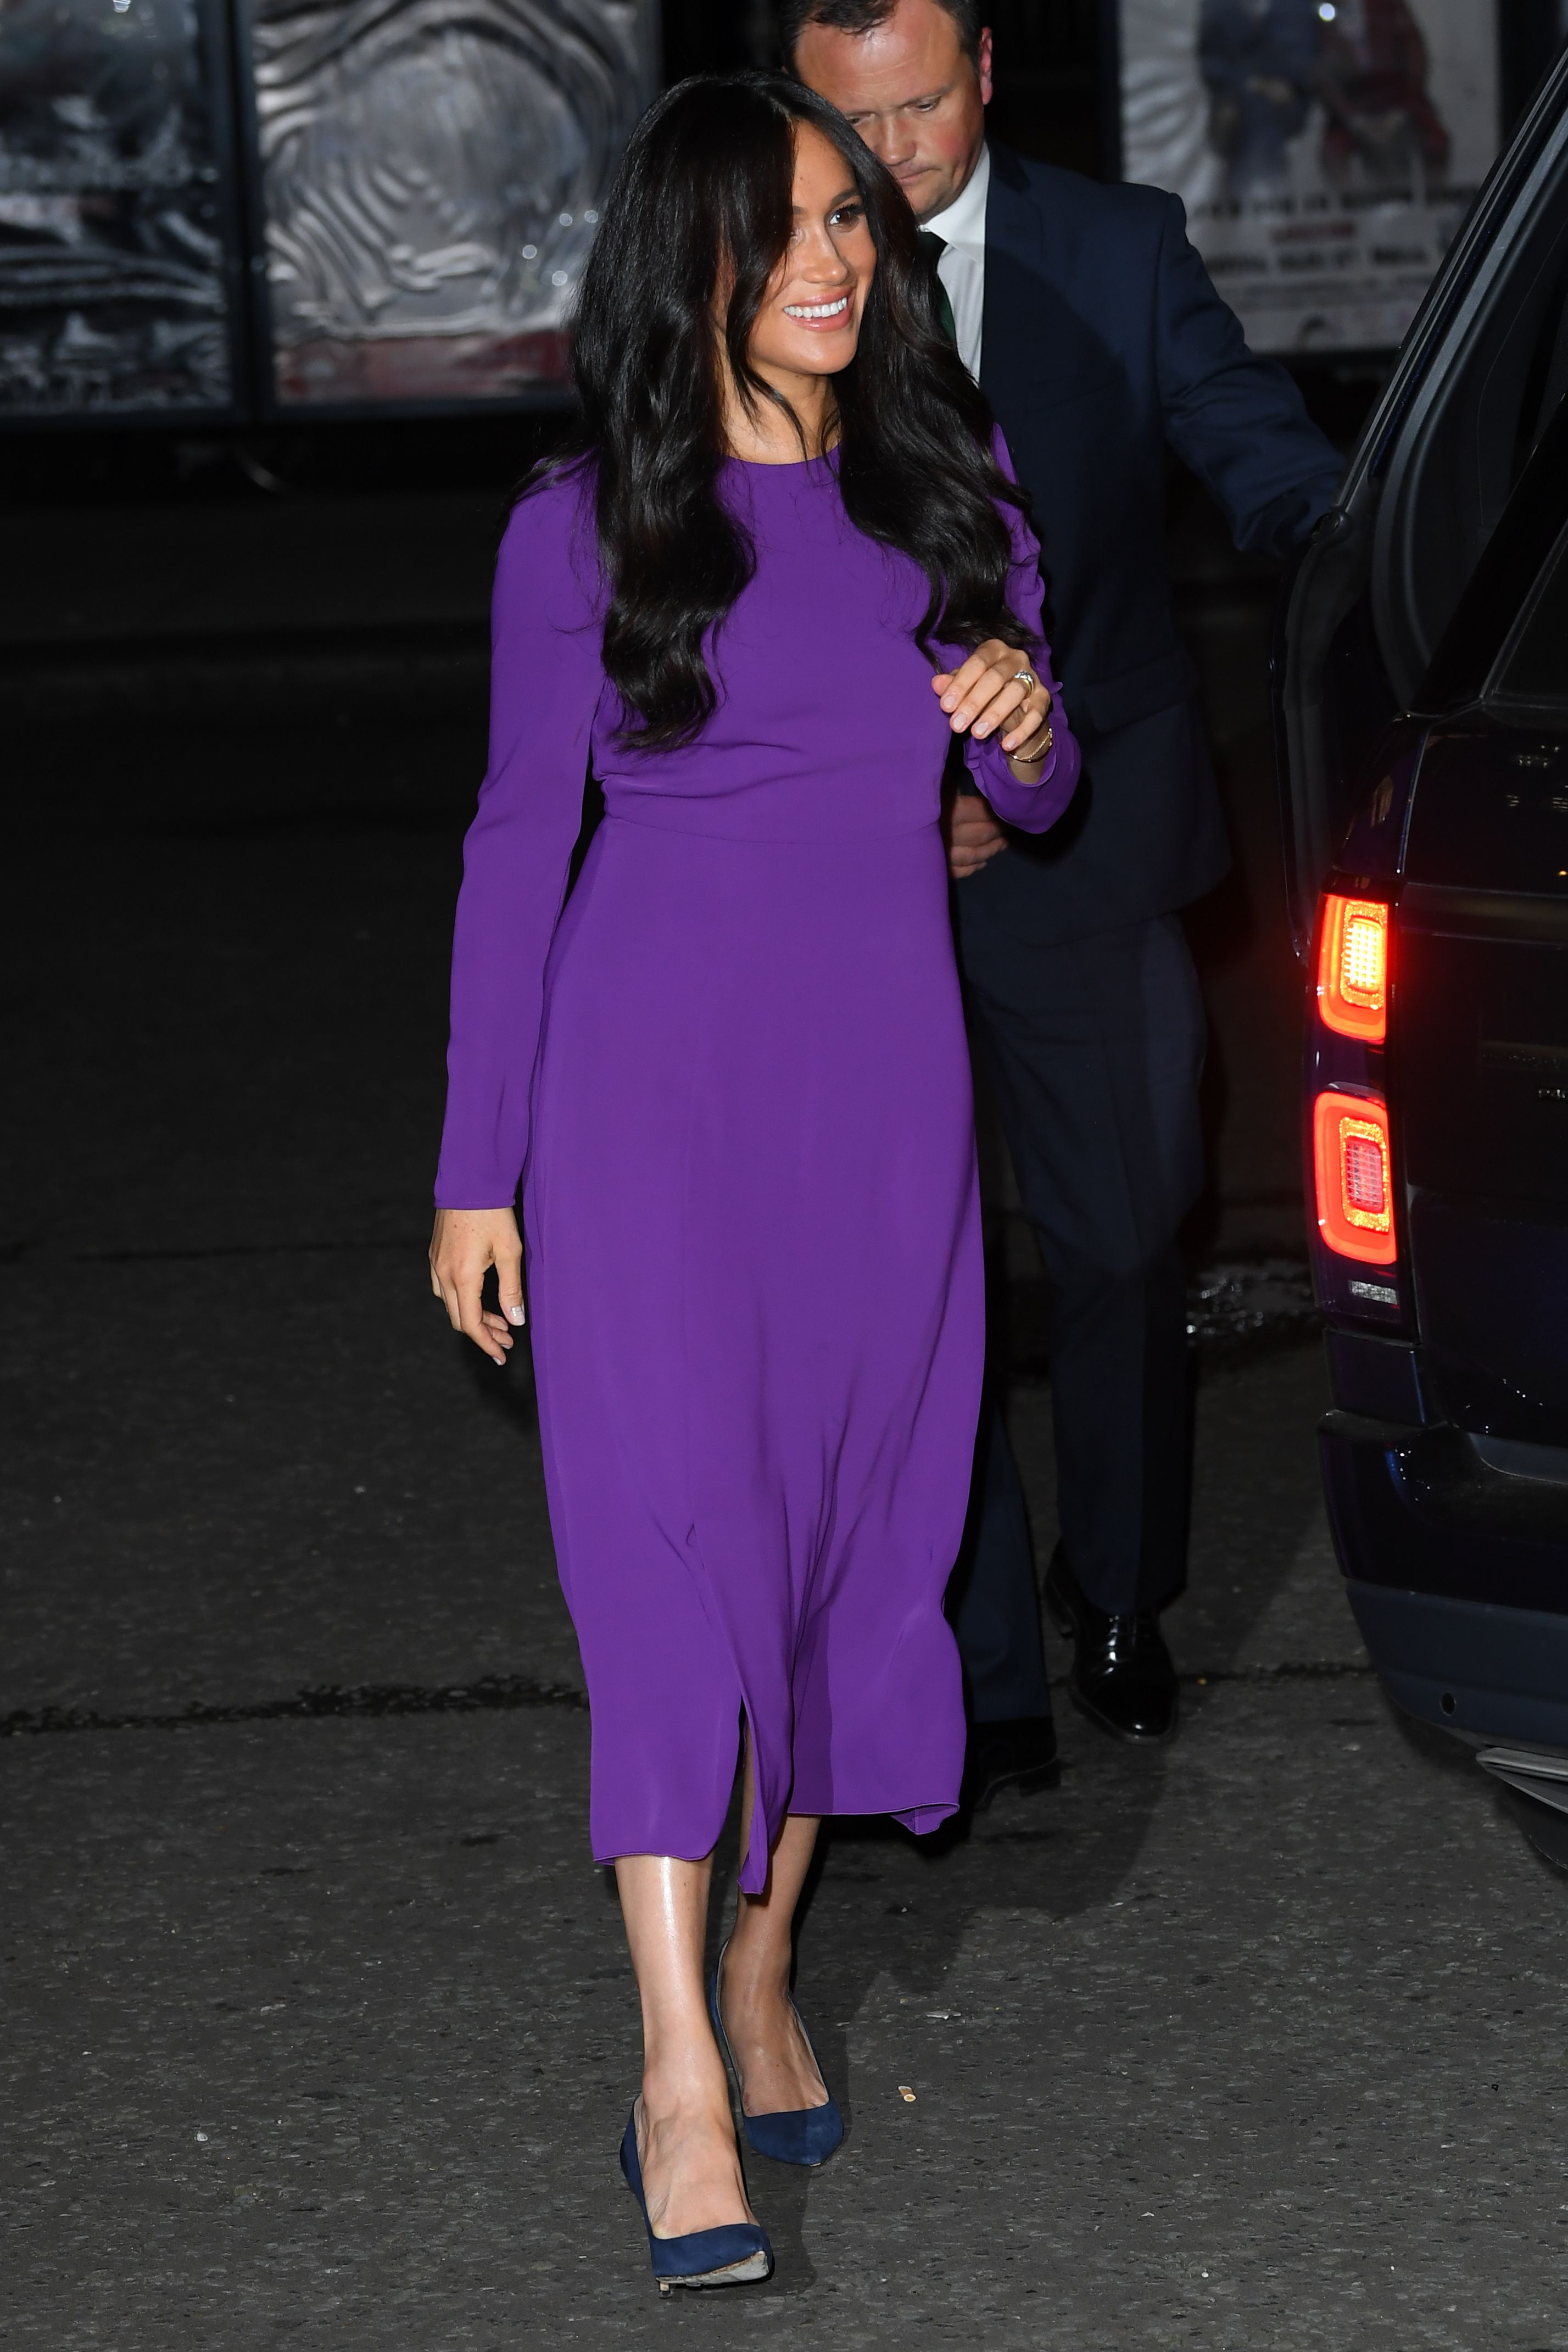 Meghan Markle Channeled Princess Diana in a Purple Aritzia Dress at the One Young World Summit